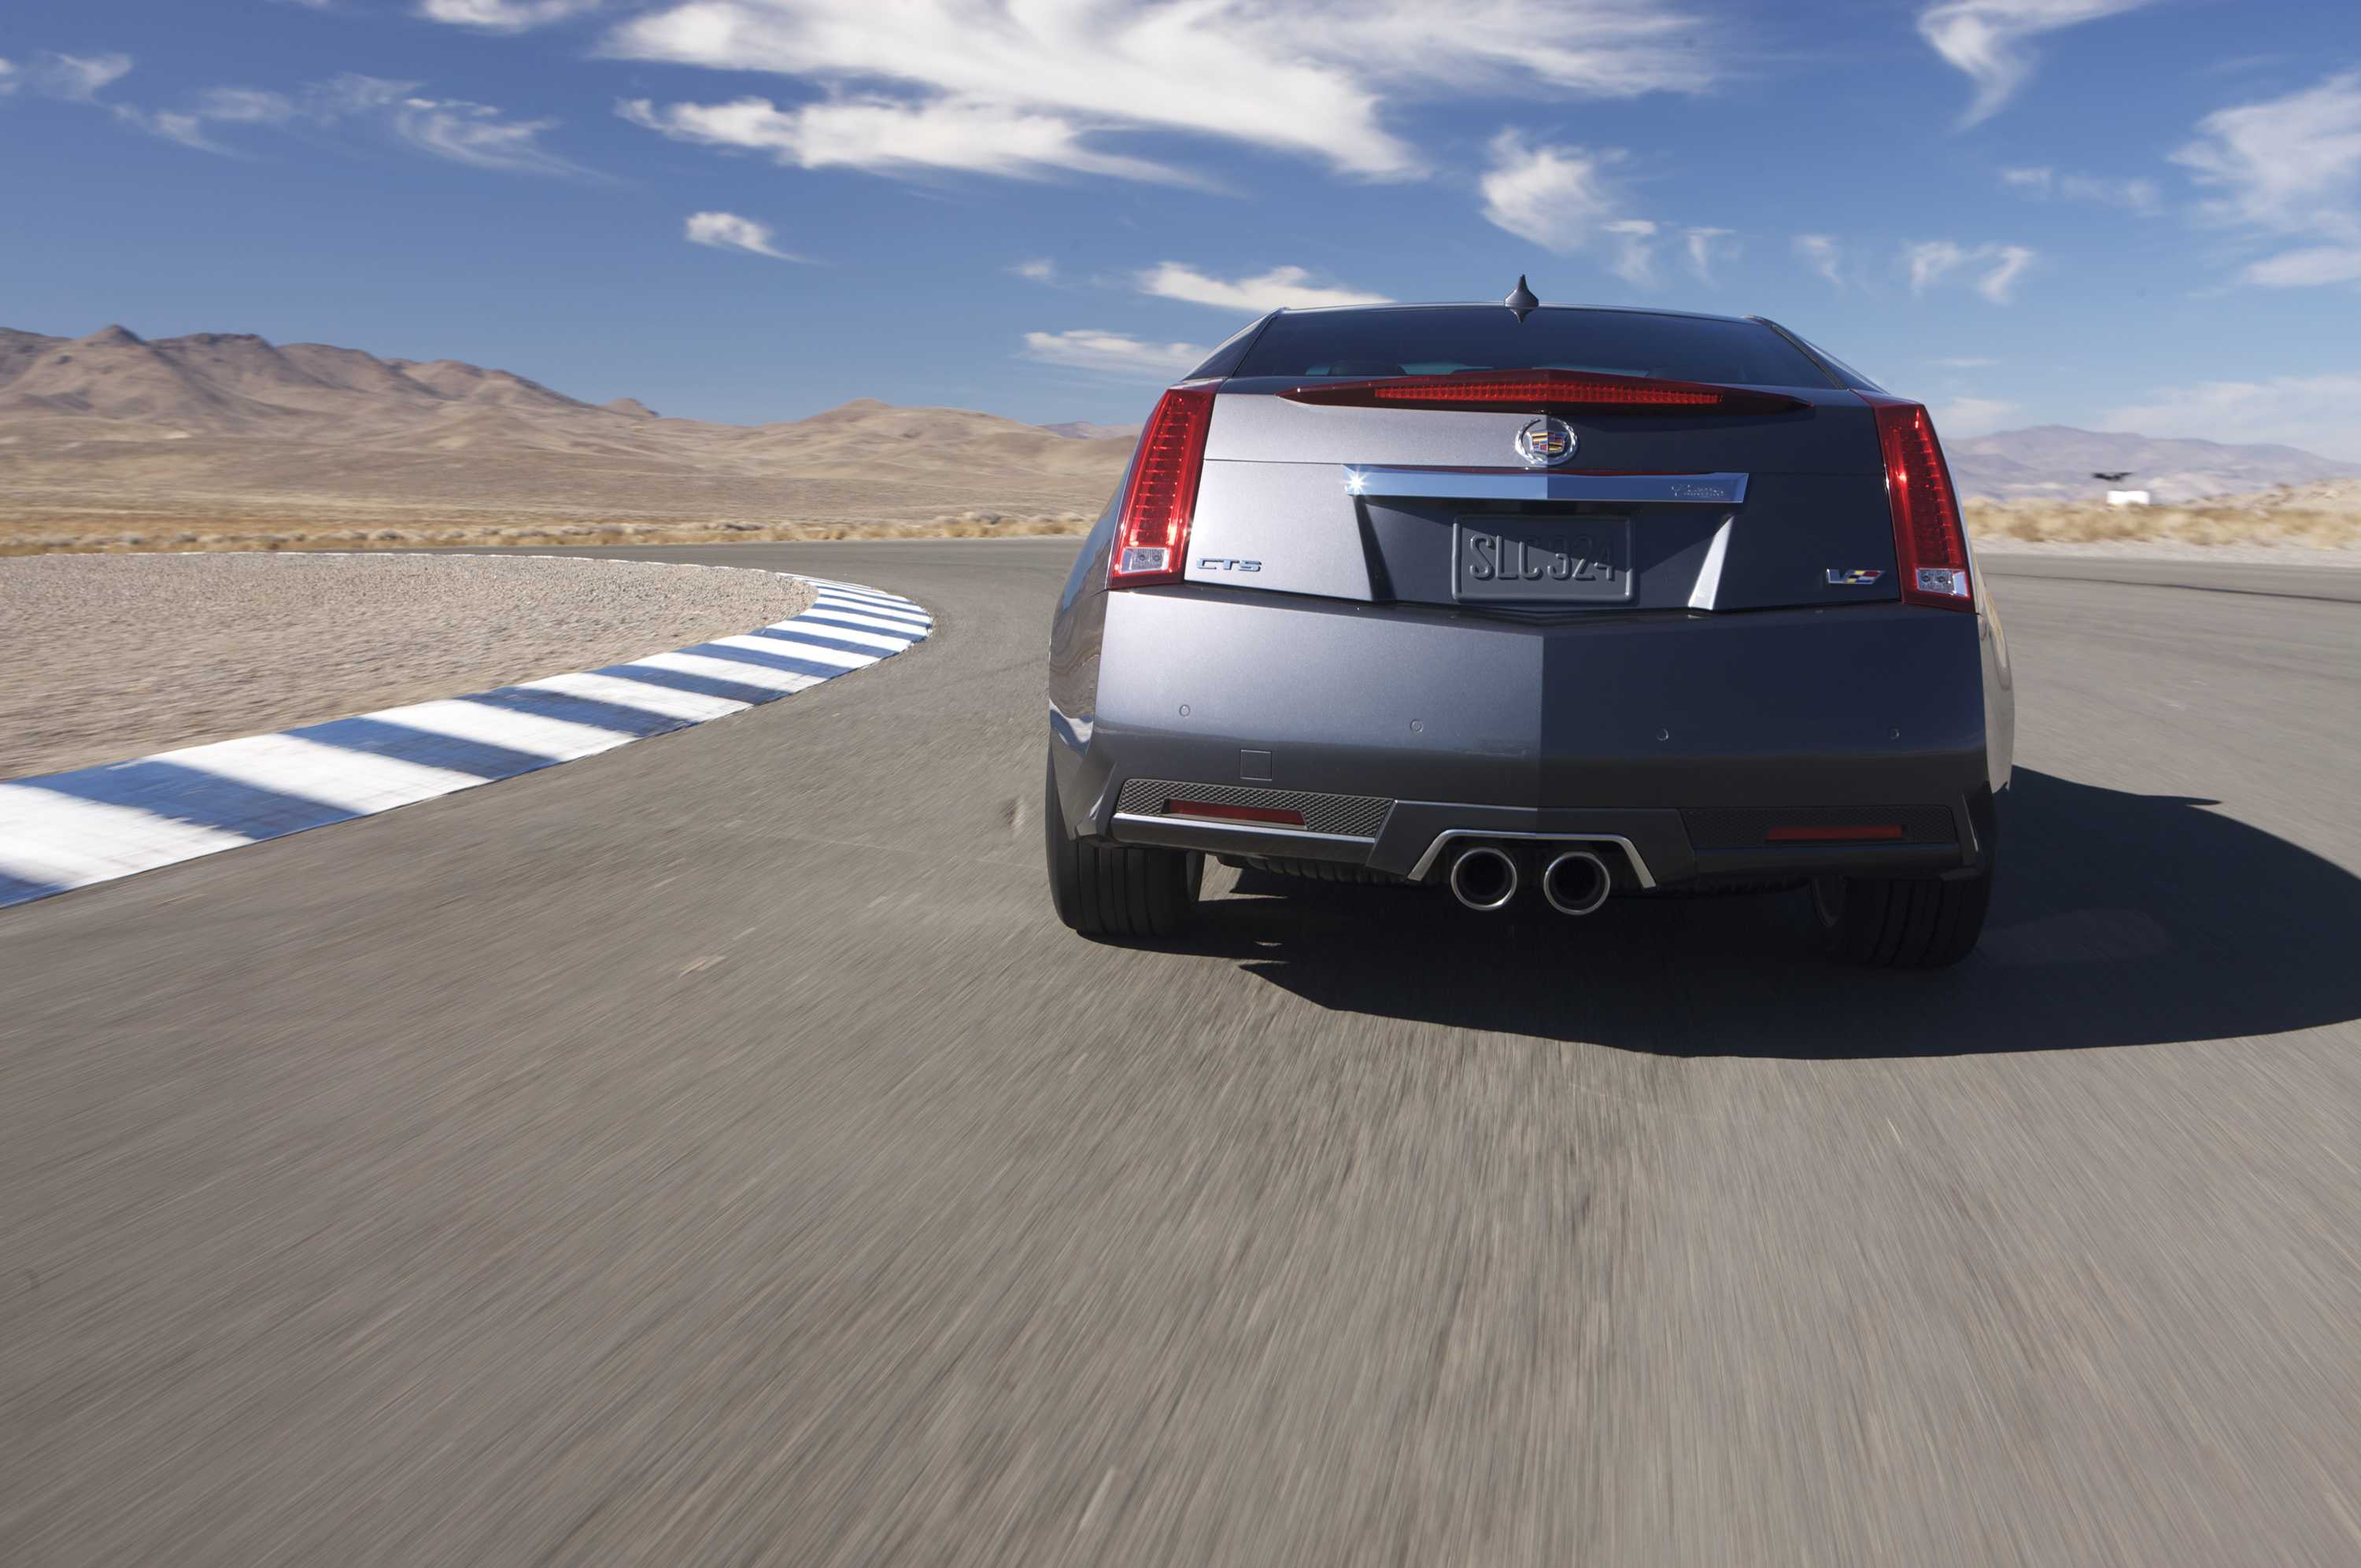 cadillac-cts-coupe-back-0-320264 Great Description About 2012 Cts-v for Sale with Inspiring Images Cars Review